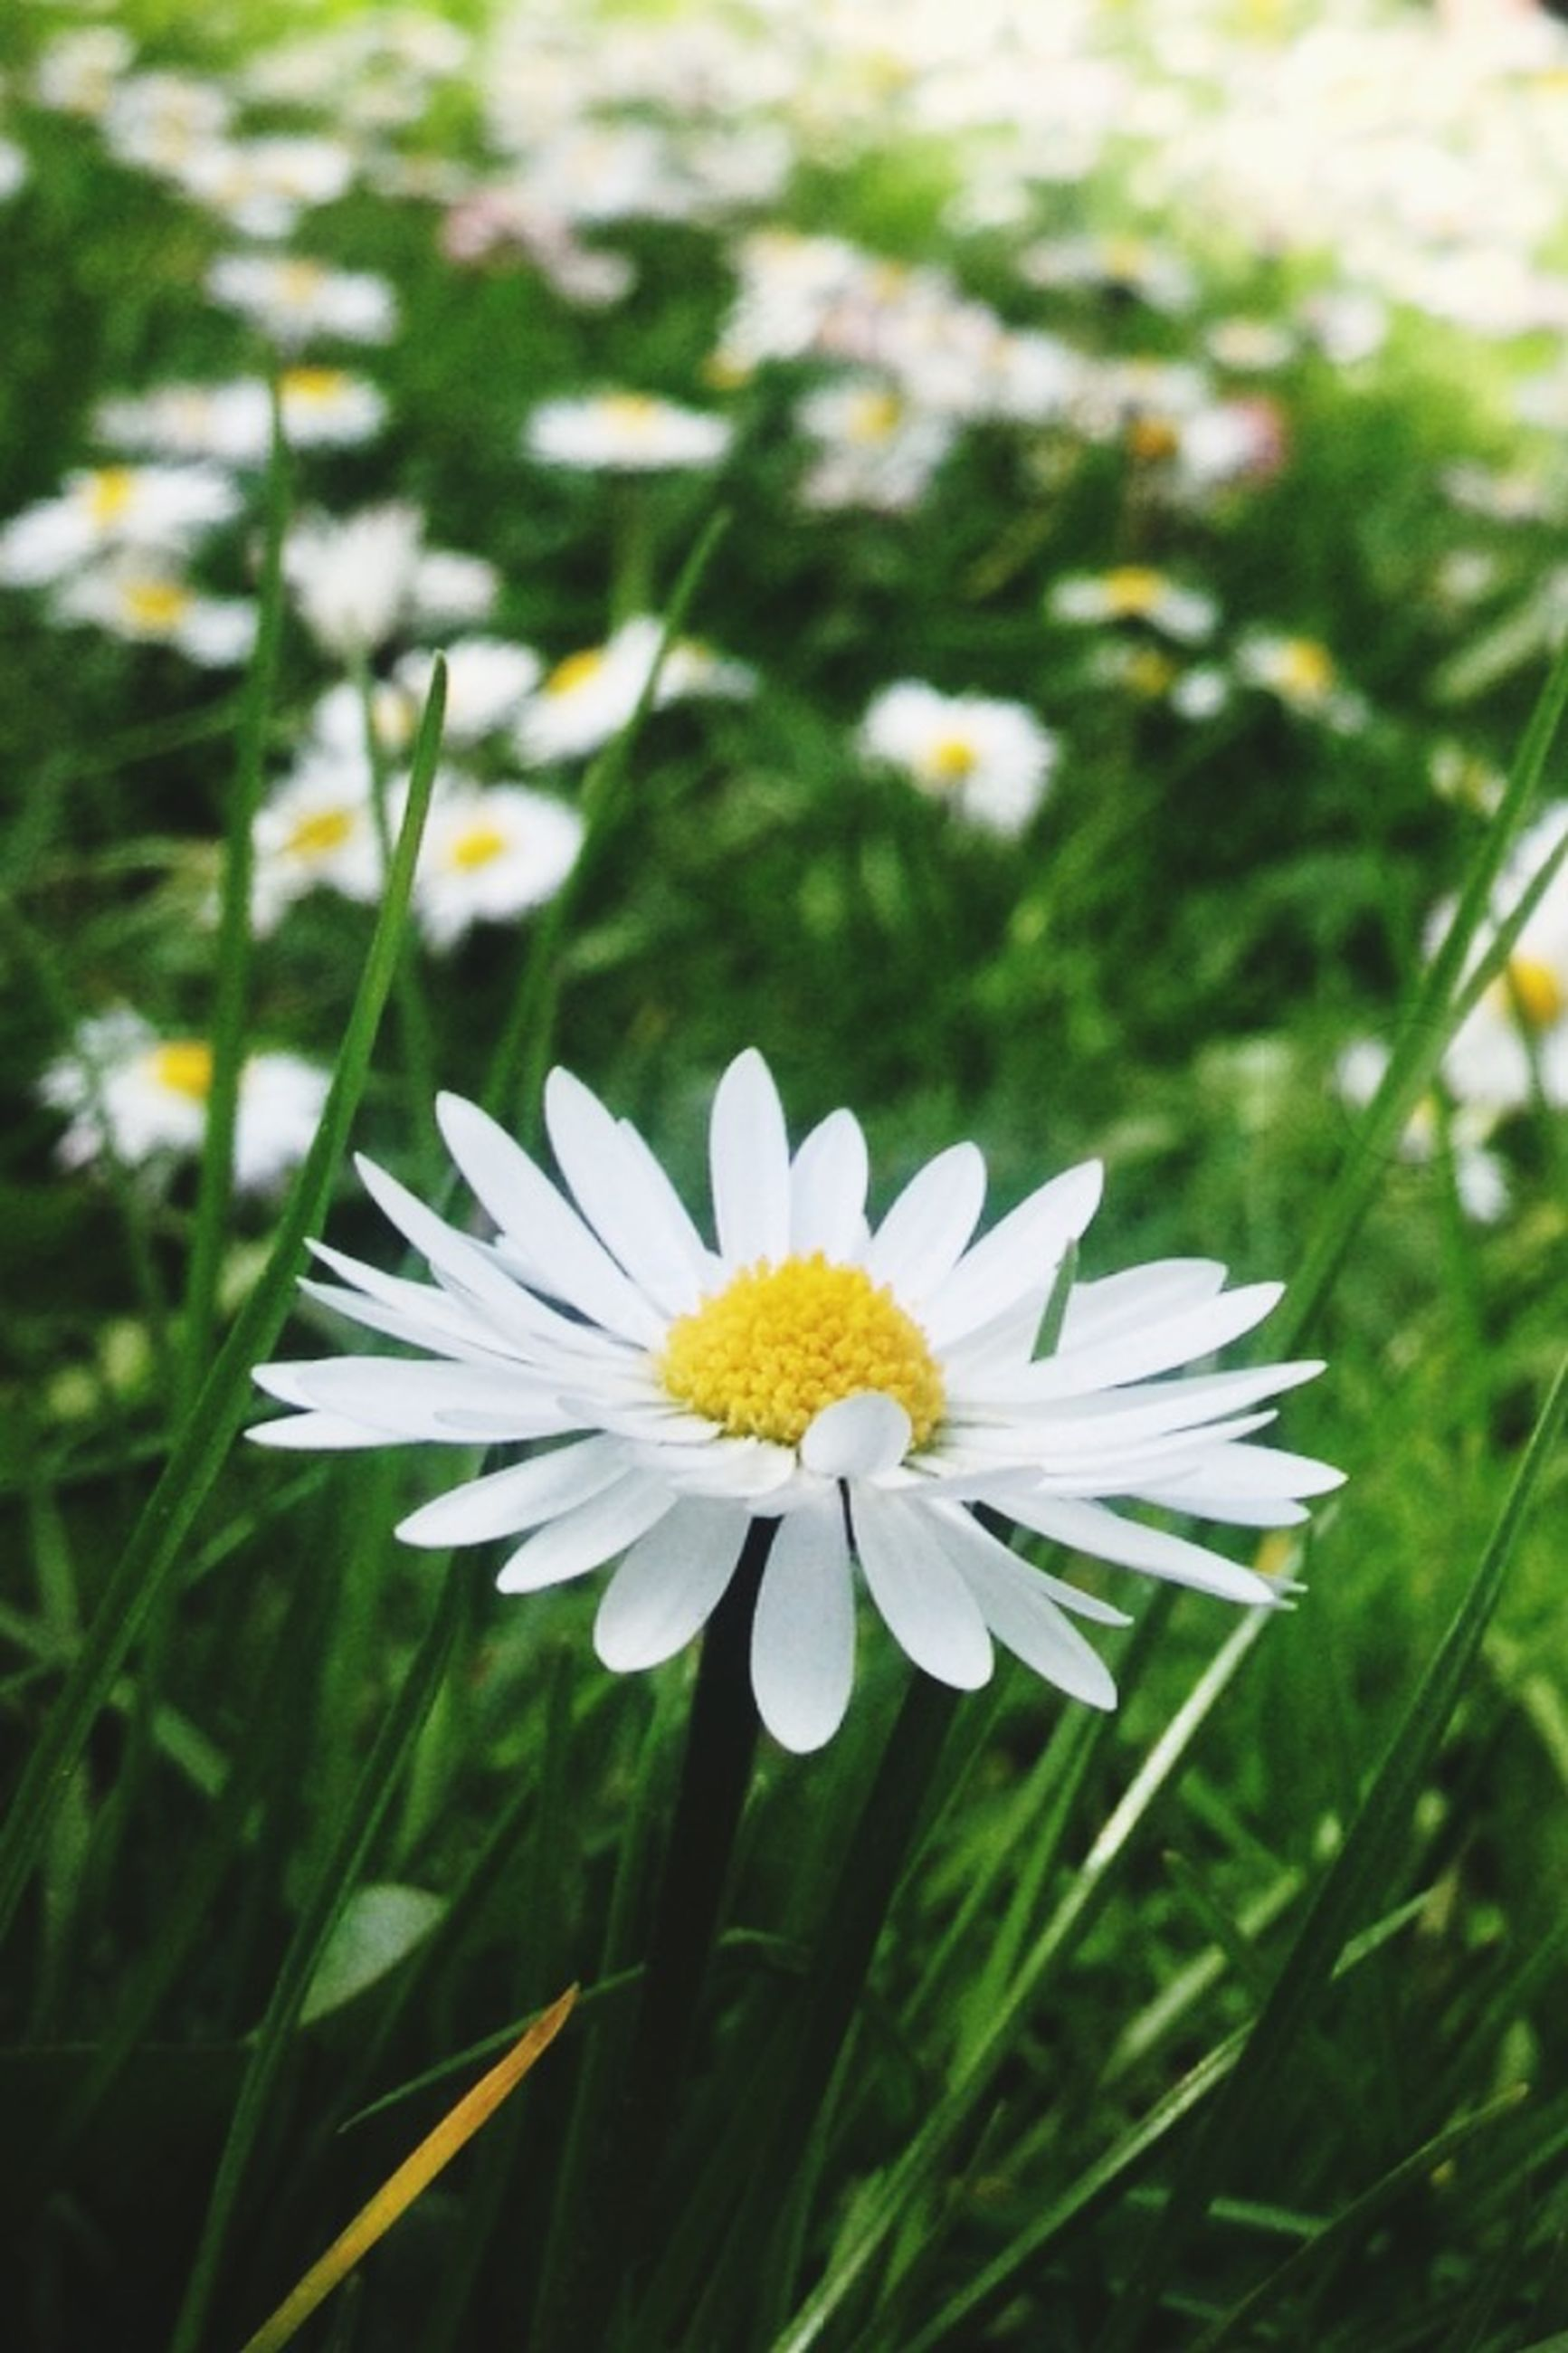 flower, freshness, fragility, petal, growth, flower head, white color, beauty in nature, focus on foreground, blooming, daisy, nature, plant, field, close-up, pollen, in bloom, grass, stem, day